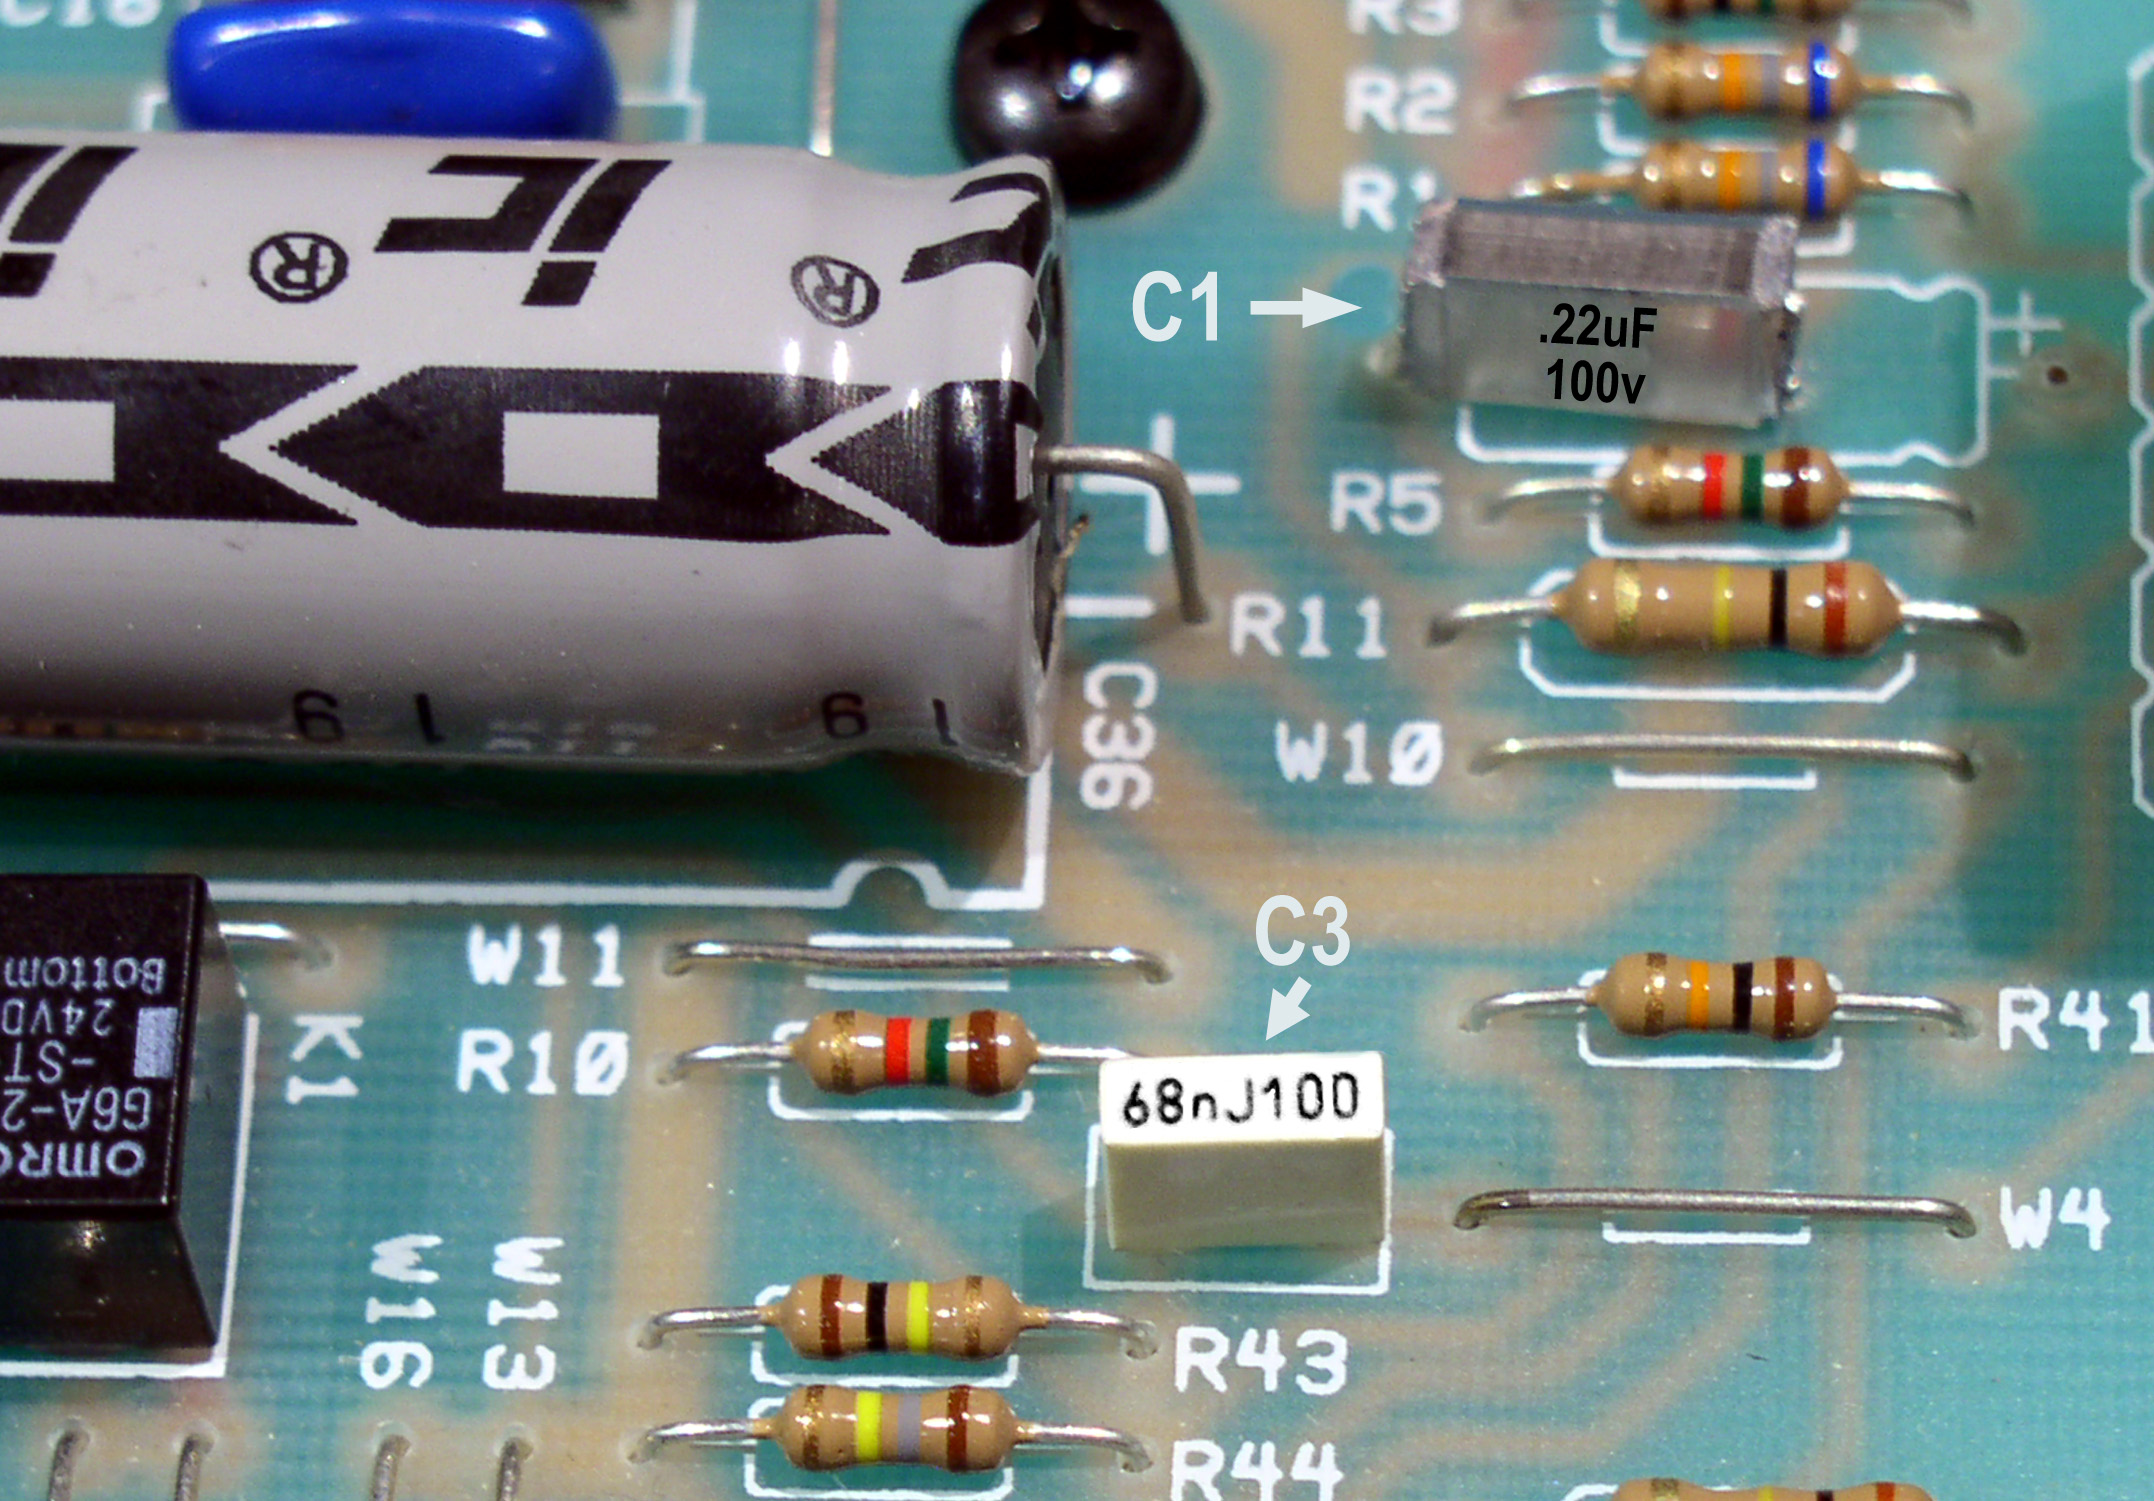 figure-2: locating c1 and c3 in the preamp section